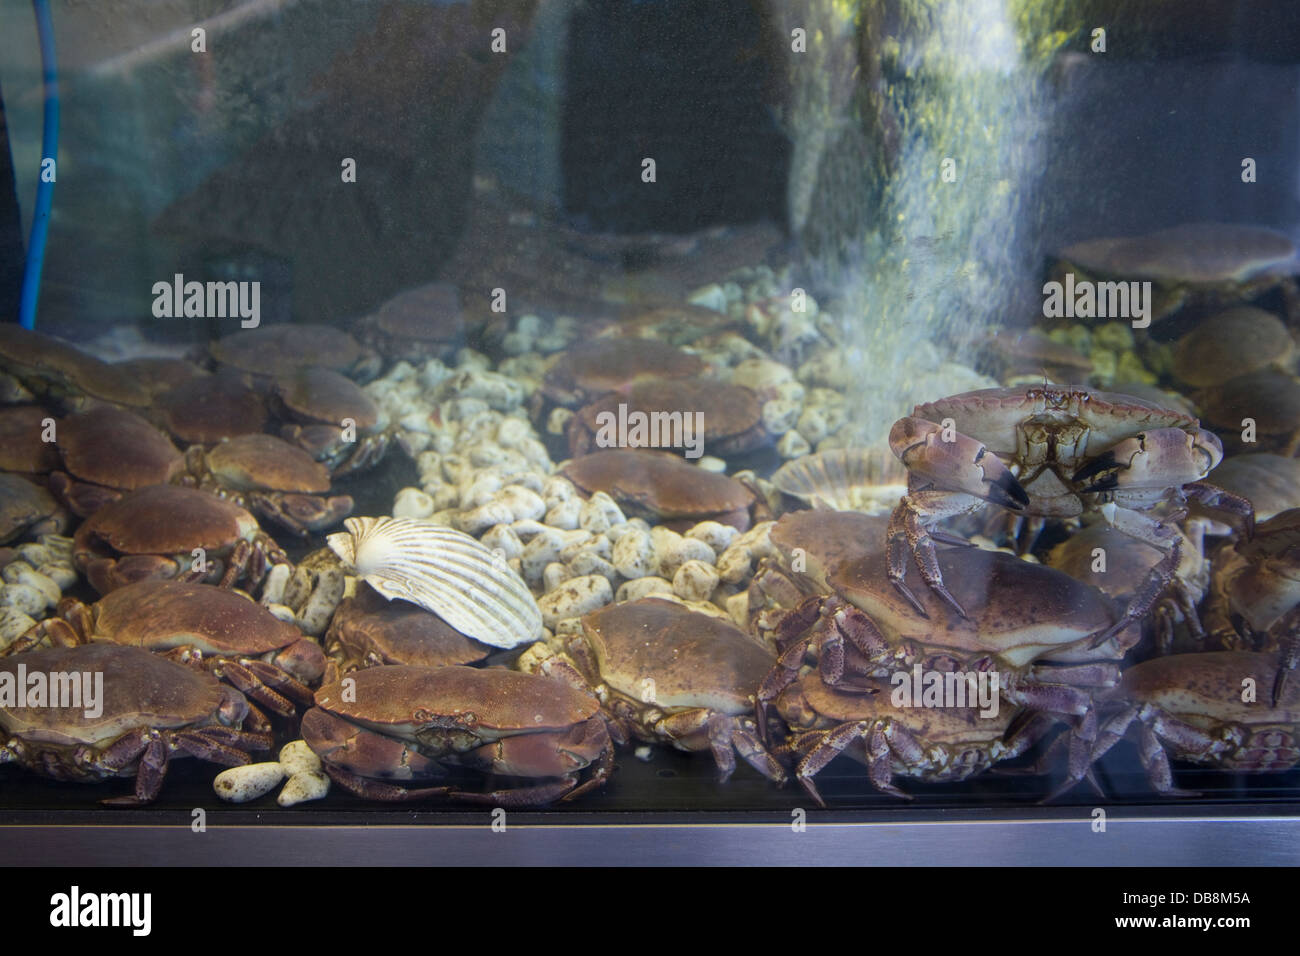 Bergen Norway Europe Aerated tank full of live crabs for sale on stall in world famous Fish Market Torget i Bergen - Stock Image